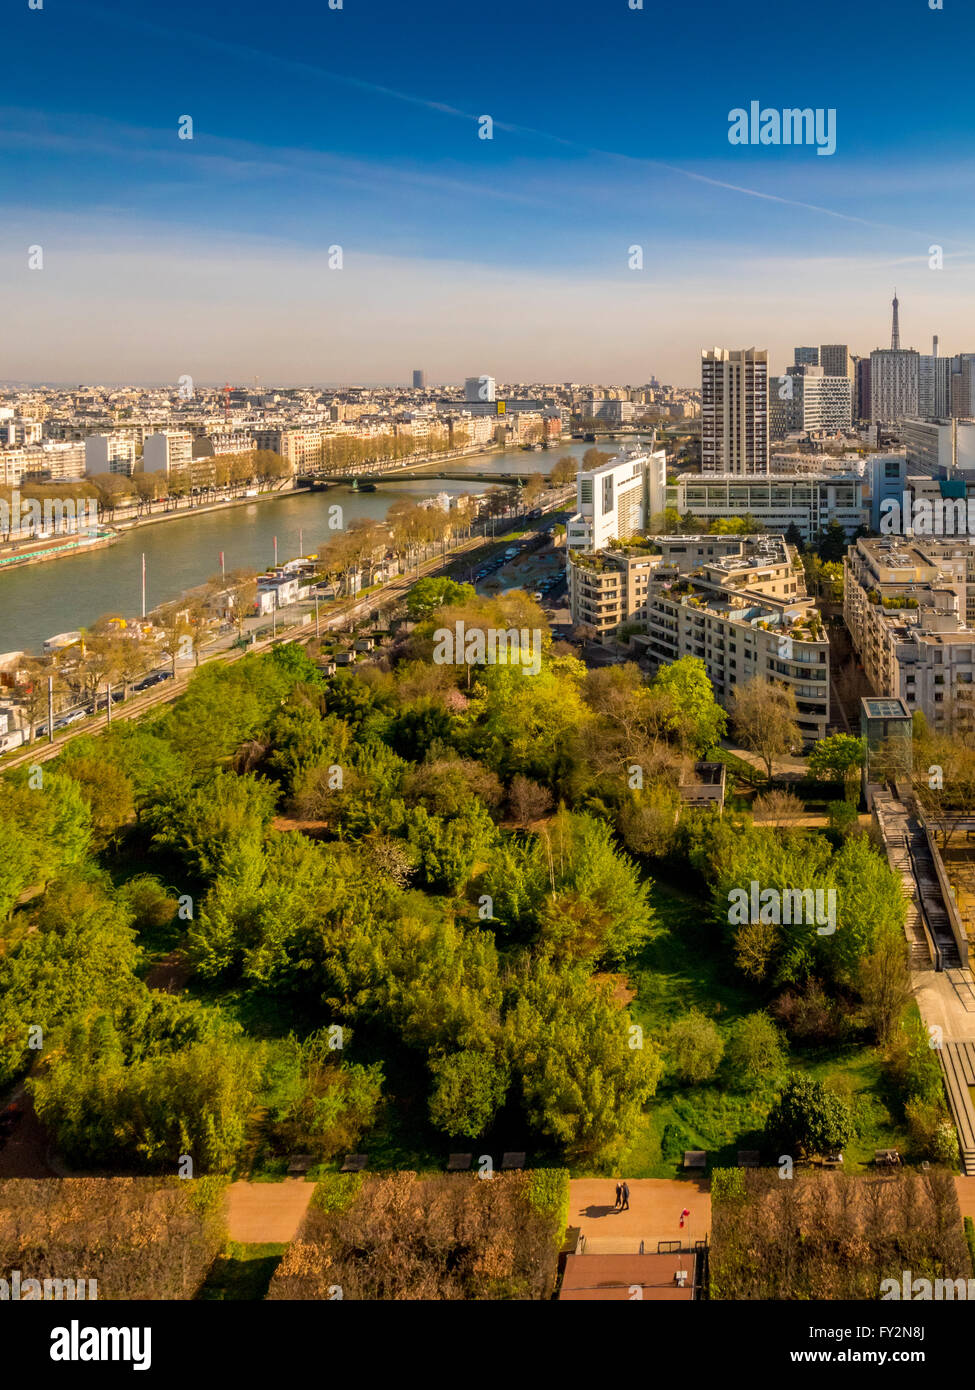 Aerial view of River Seine with Eiffel Tower in distance, Paris, France. Stock Photo